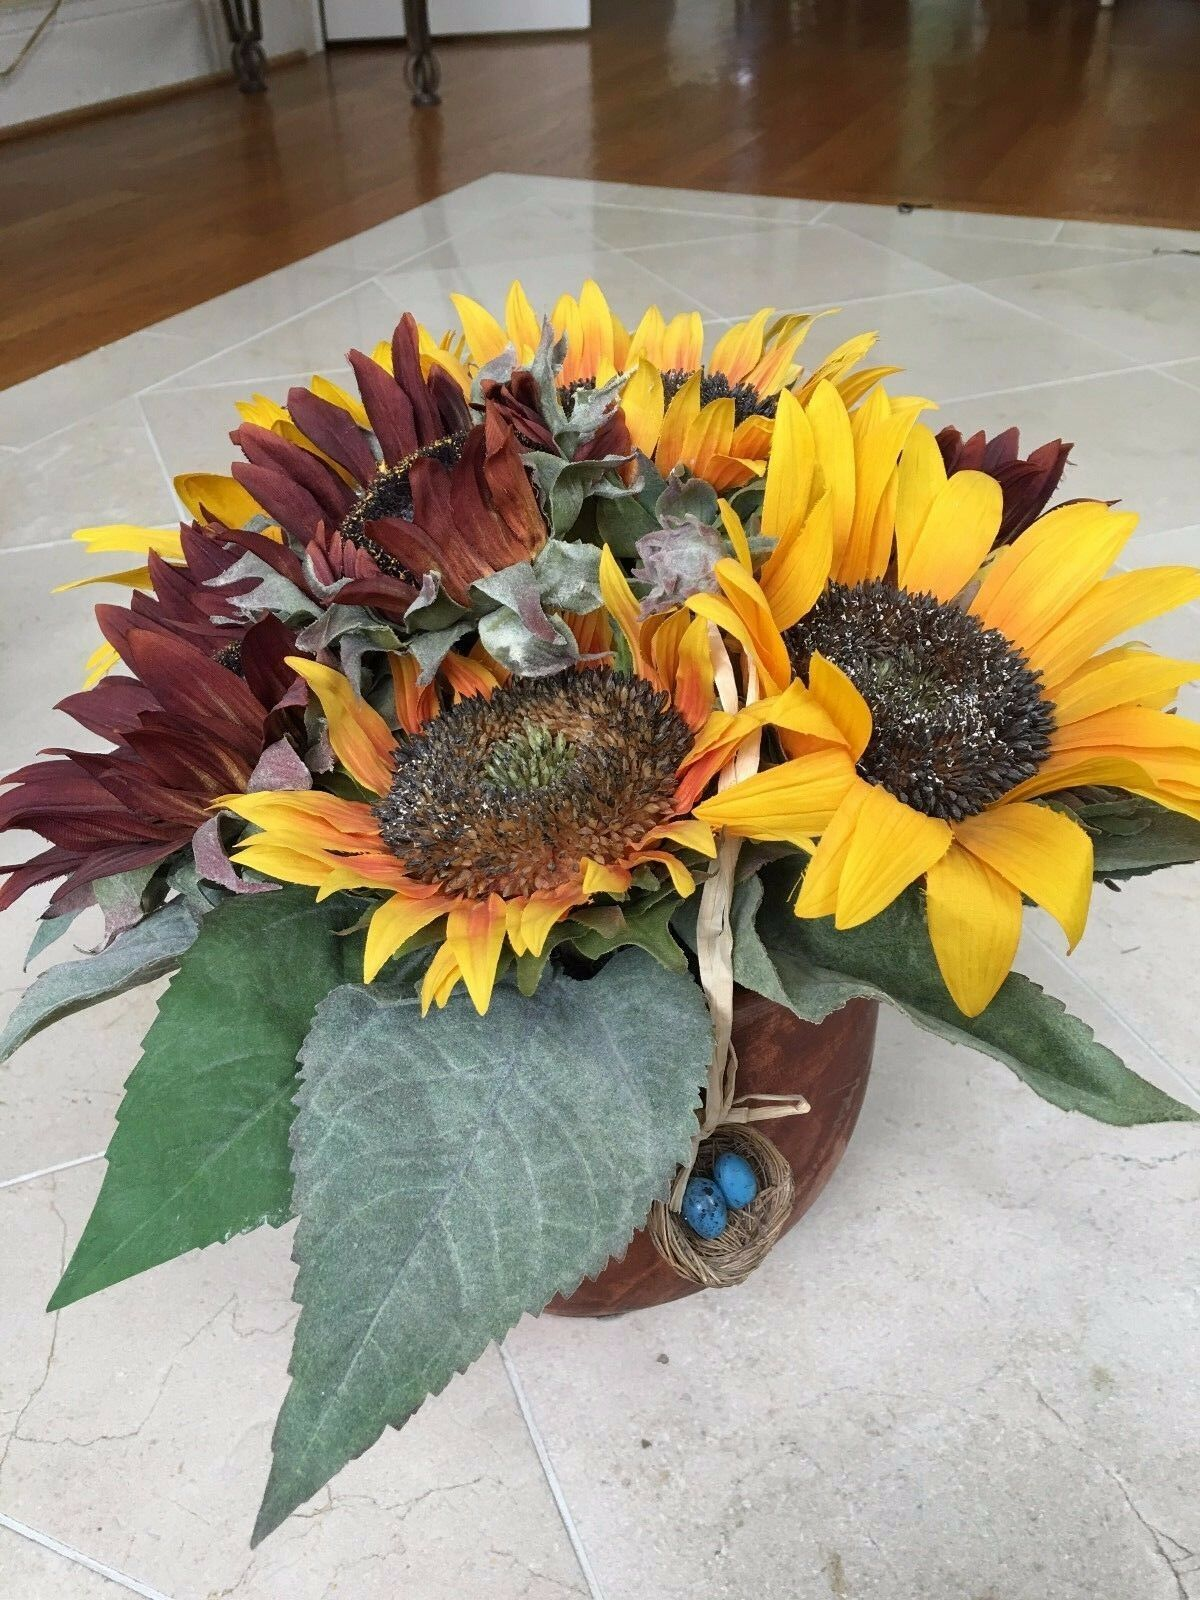 NDI Floral Arrangement of Mixed Sunflowers w    Grünery in Wooden Flower Pot 72967c